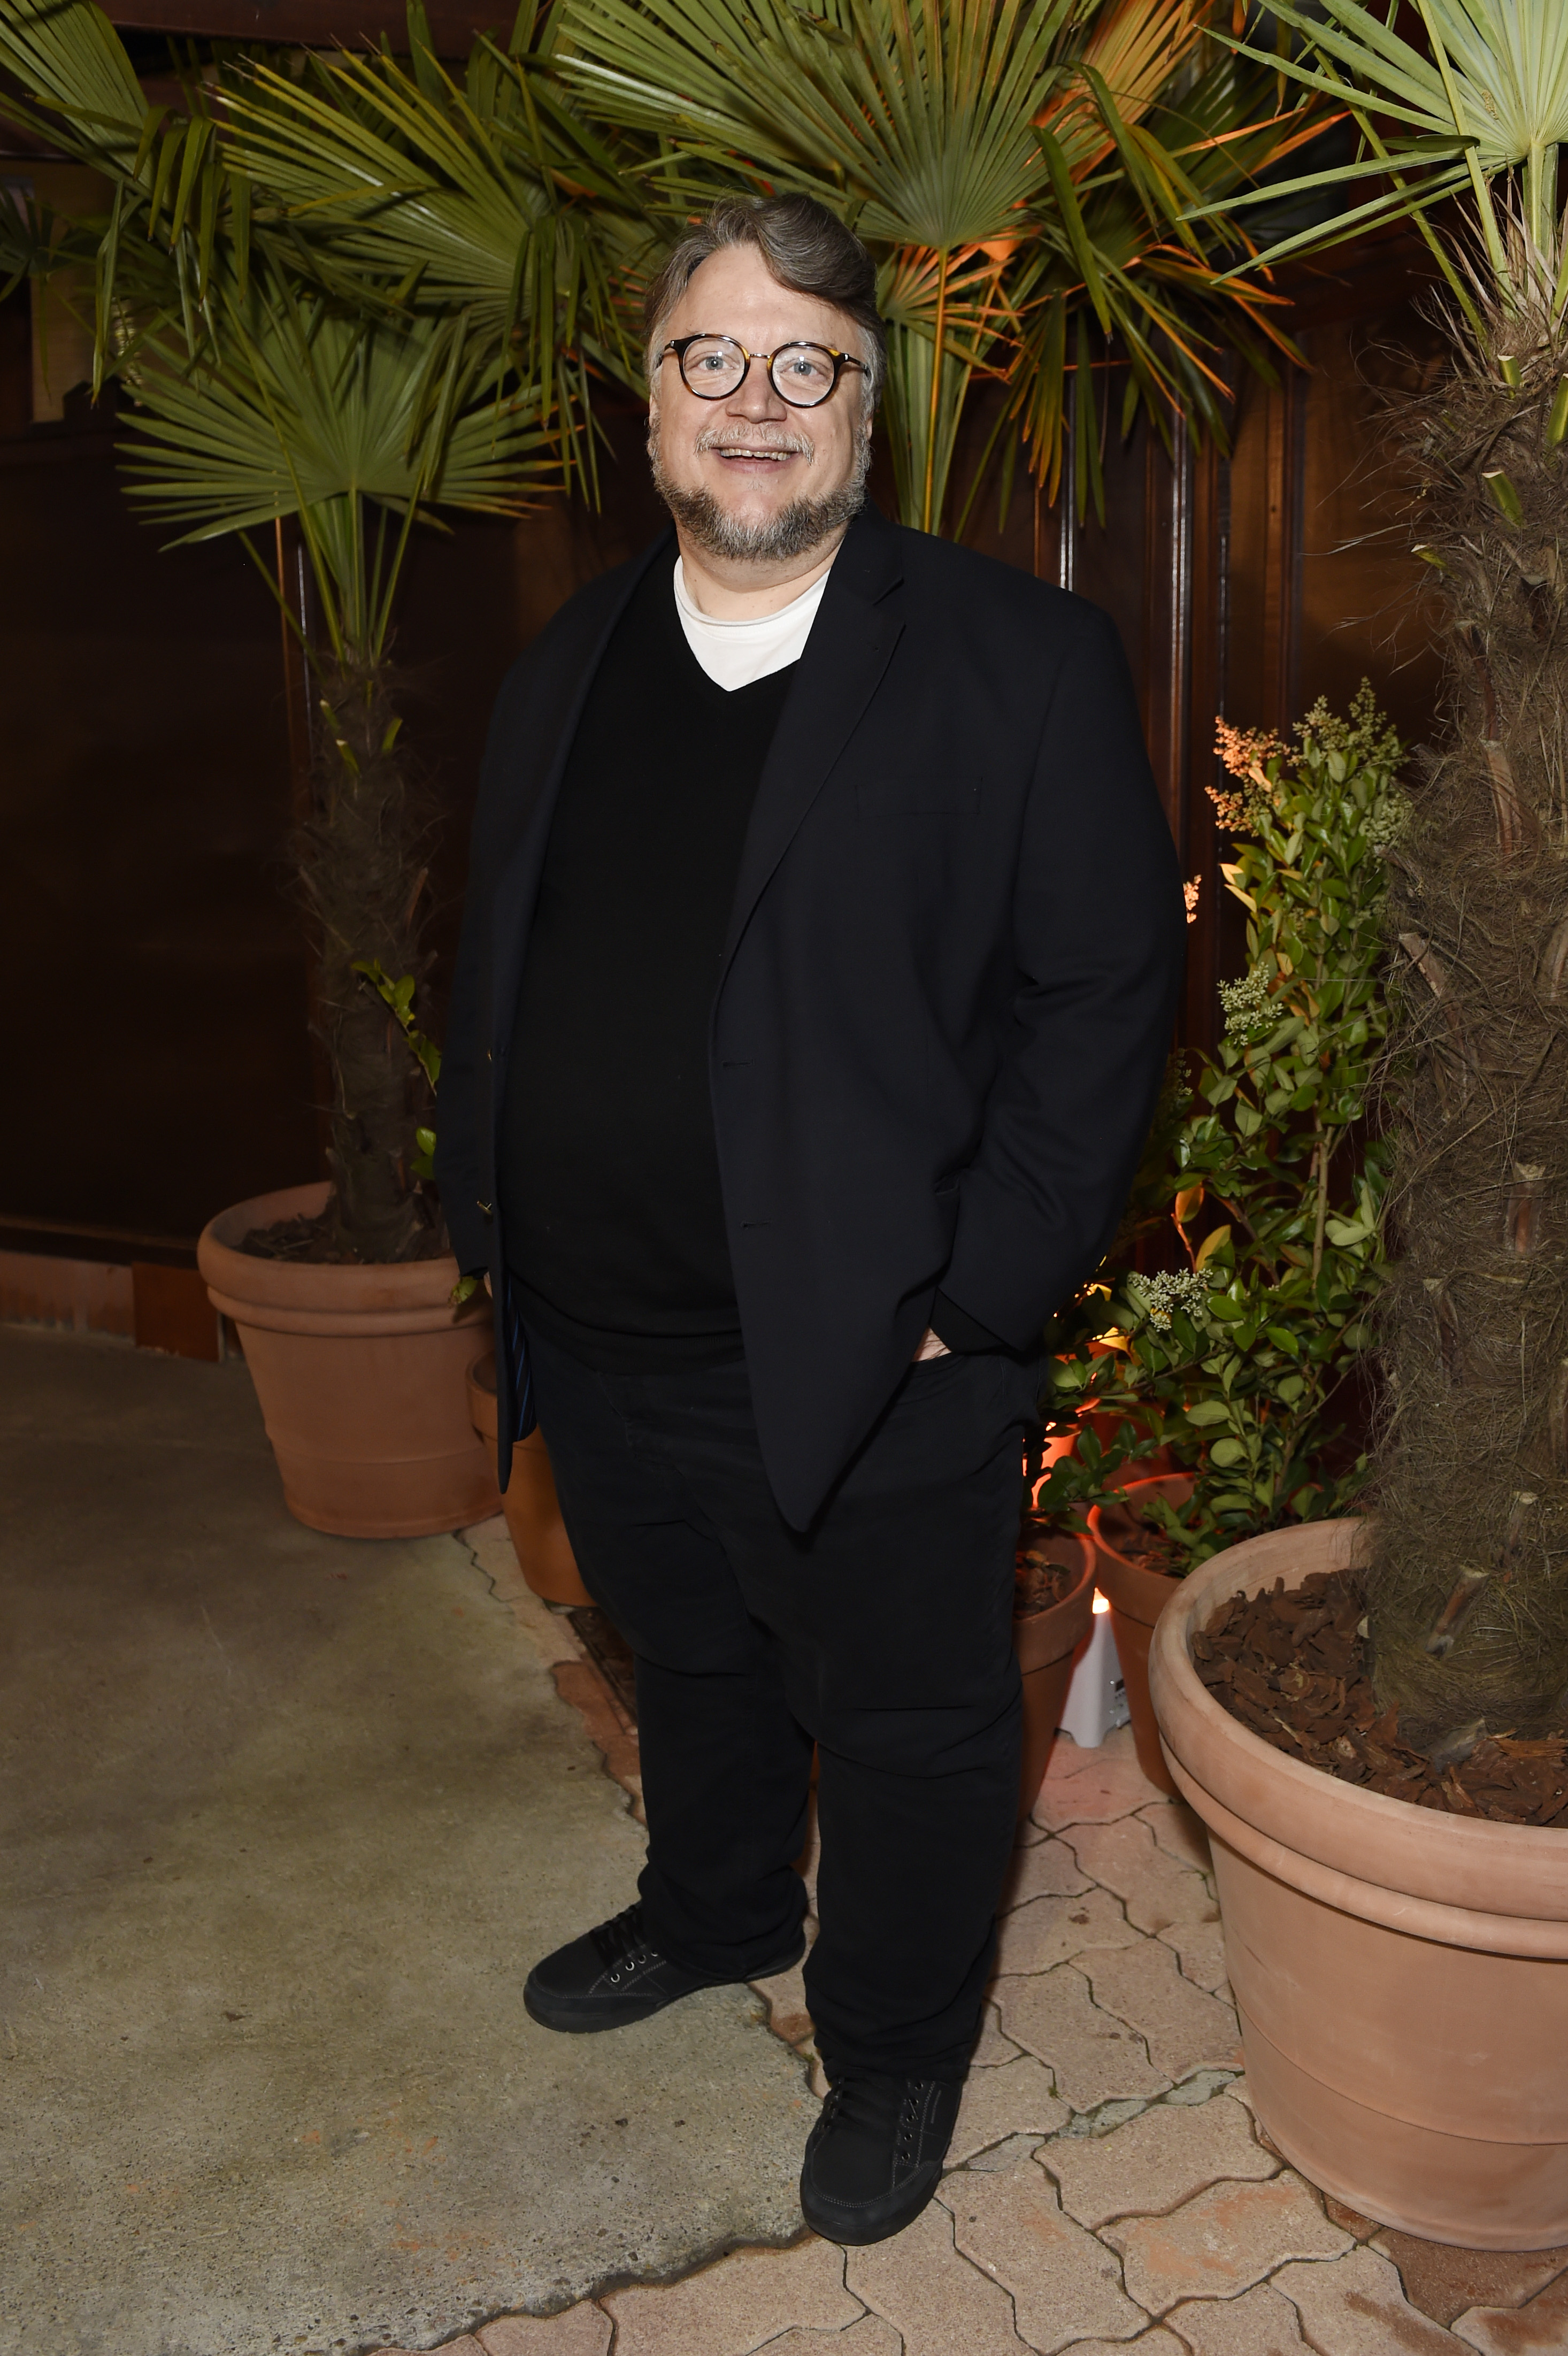 CANNES, FRANCE - MAY 22:  Guillermo del Toro attends Prada Private Dinner during the 70th annual Cannes Film Festival at Restaurant Fred L'Ecailler on May 22, 2017 in Cannes, France.  (Photo by Antony Jones/Getty Images for Prada)